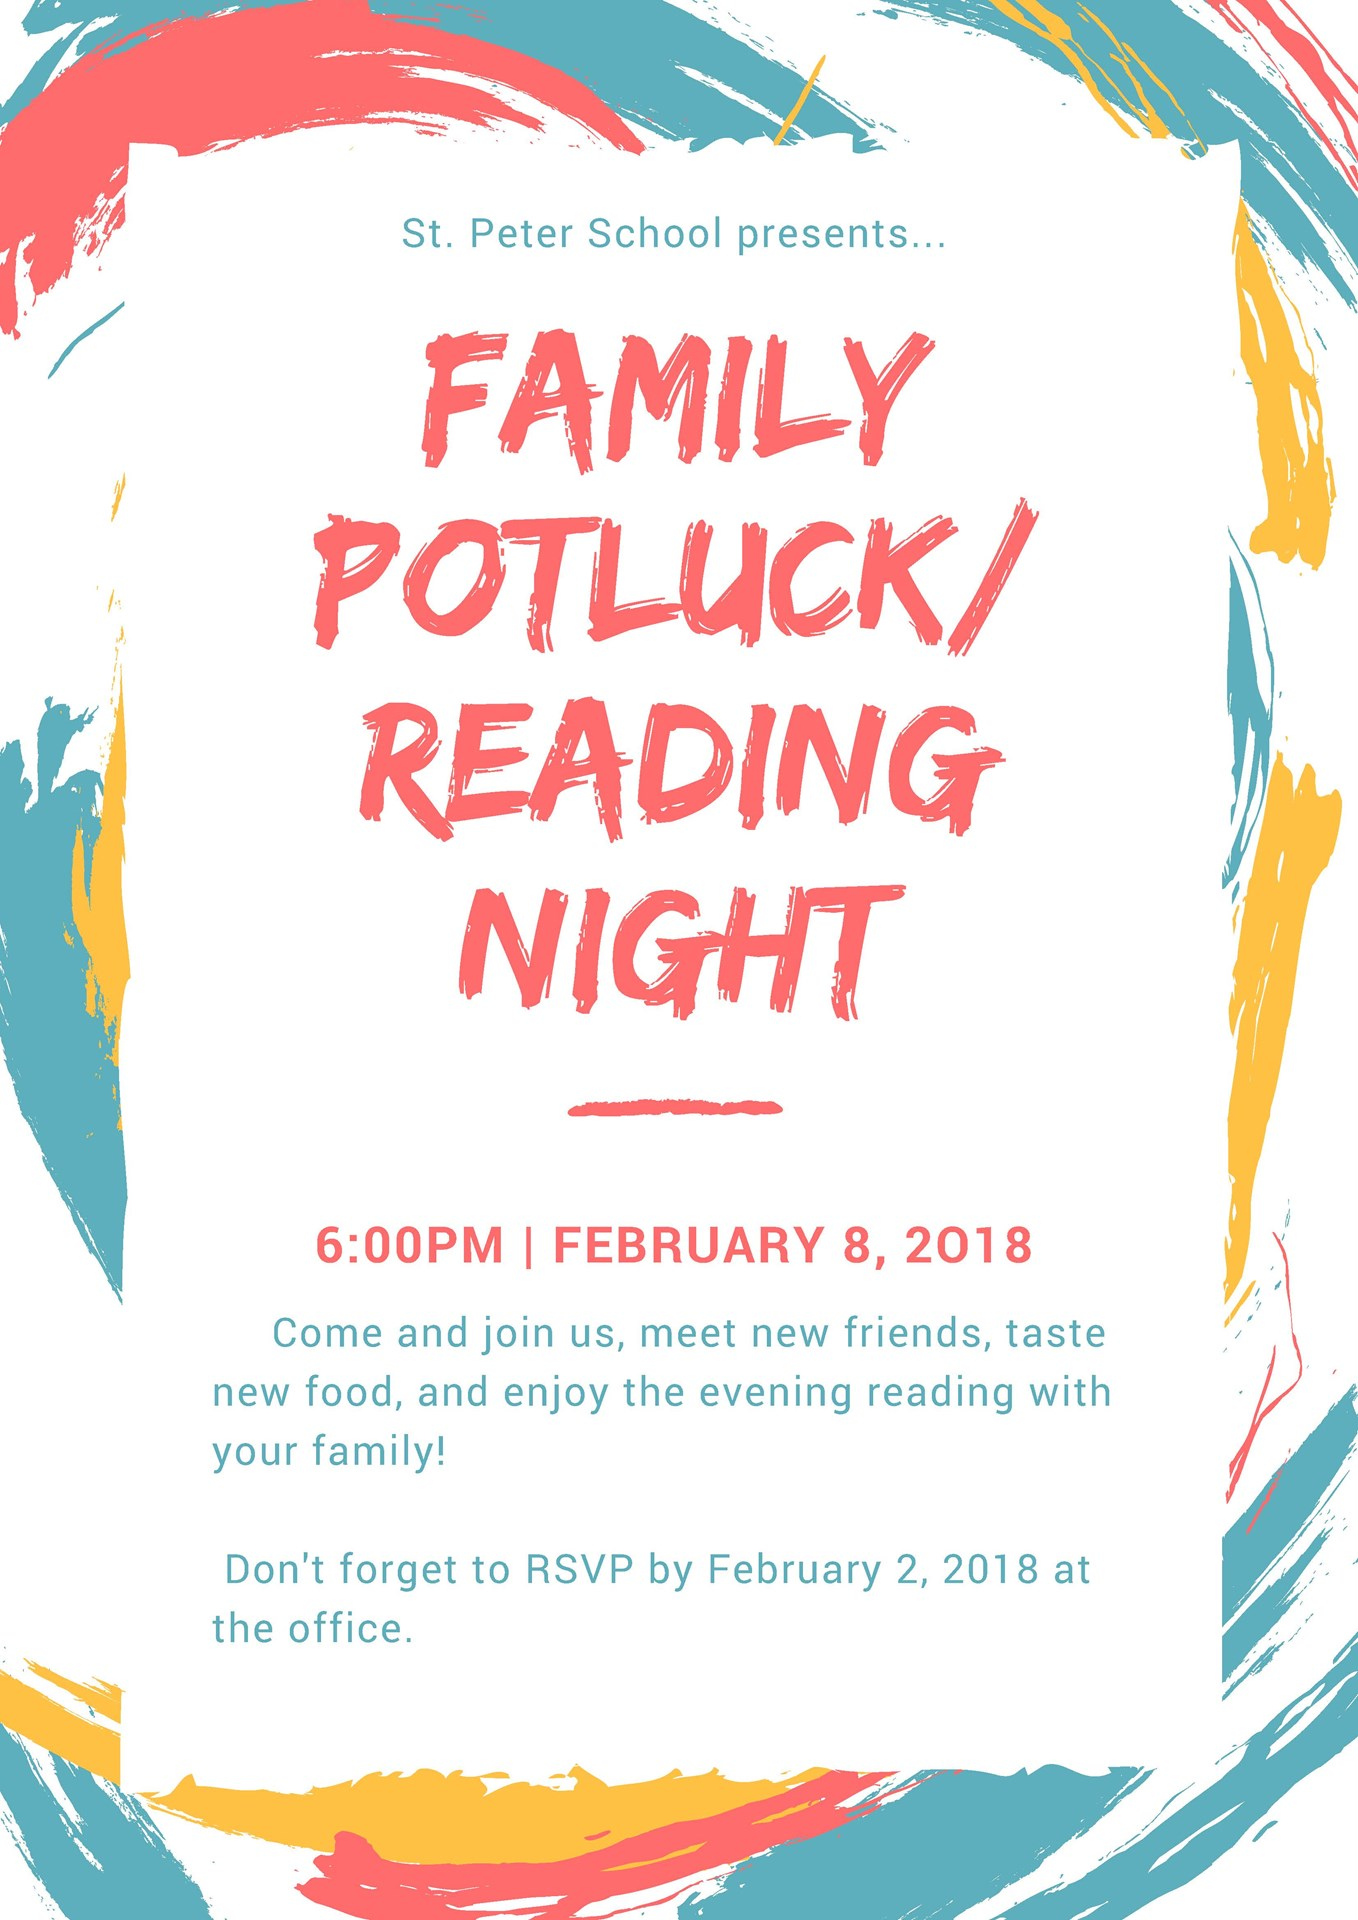 Potluck%20Reading%20Night%202018.jpg